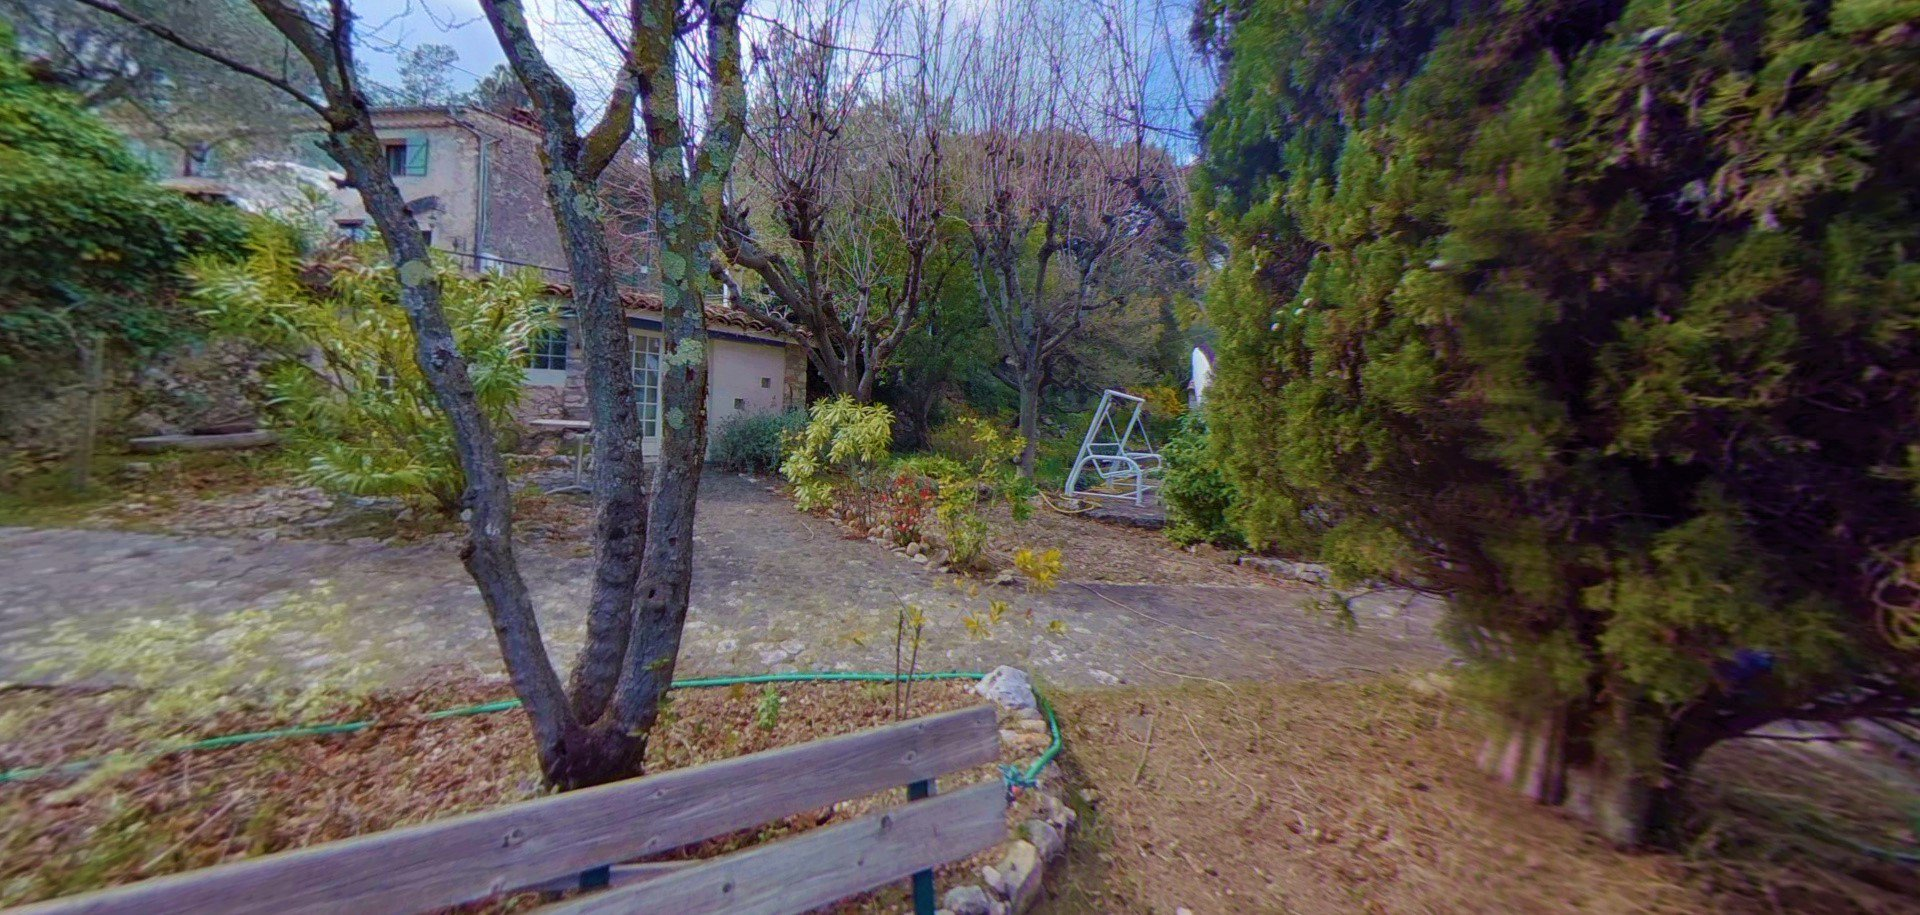 CHARMING RENOVATED BERGERIE